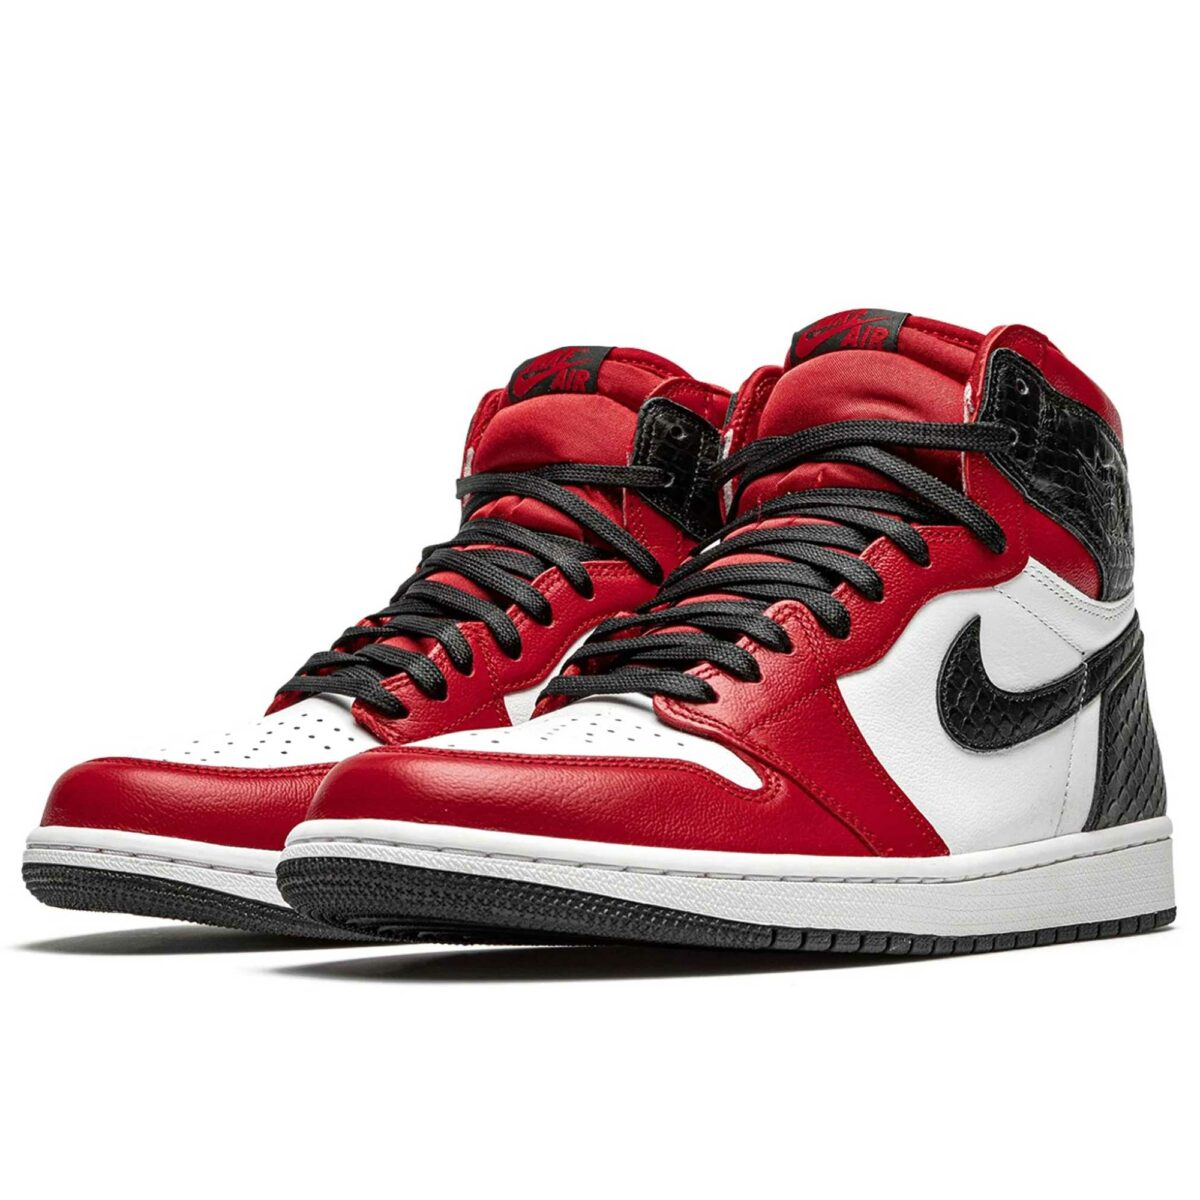 nike air Jordan 1 high retro satin snake CD0461_601 купить